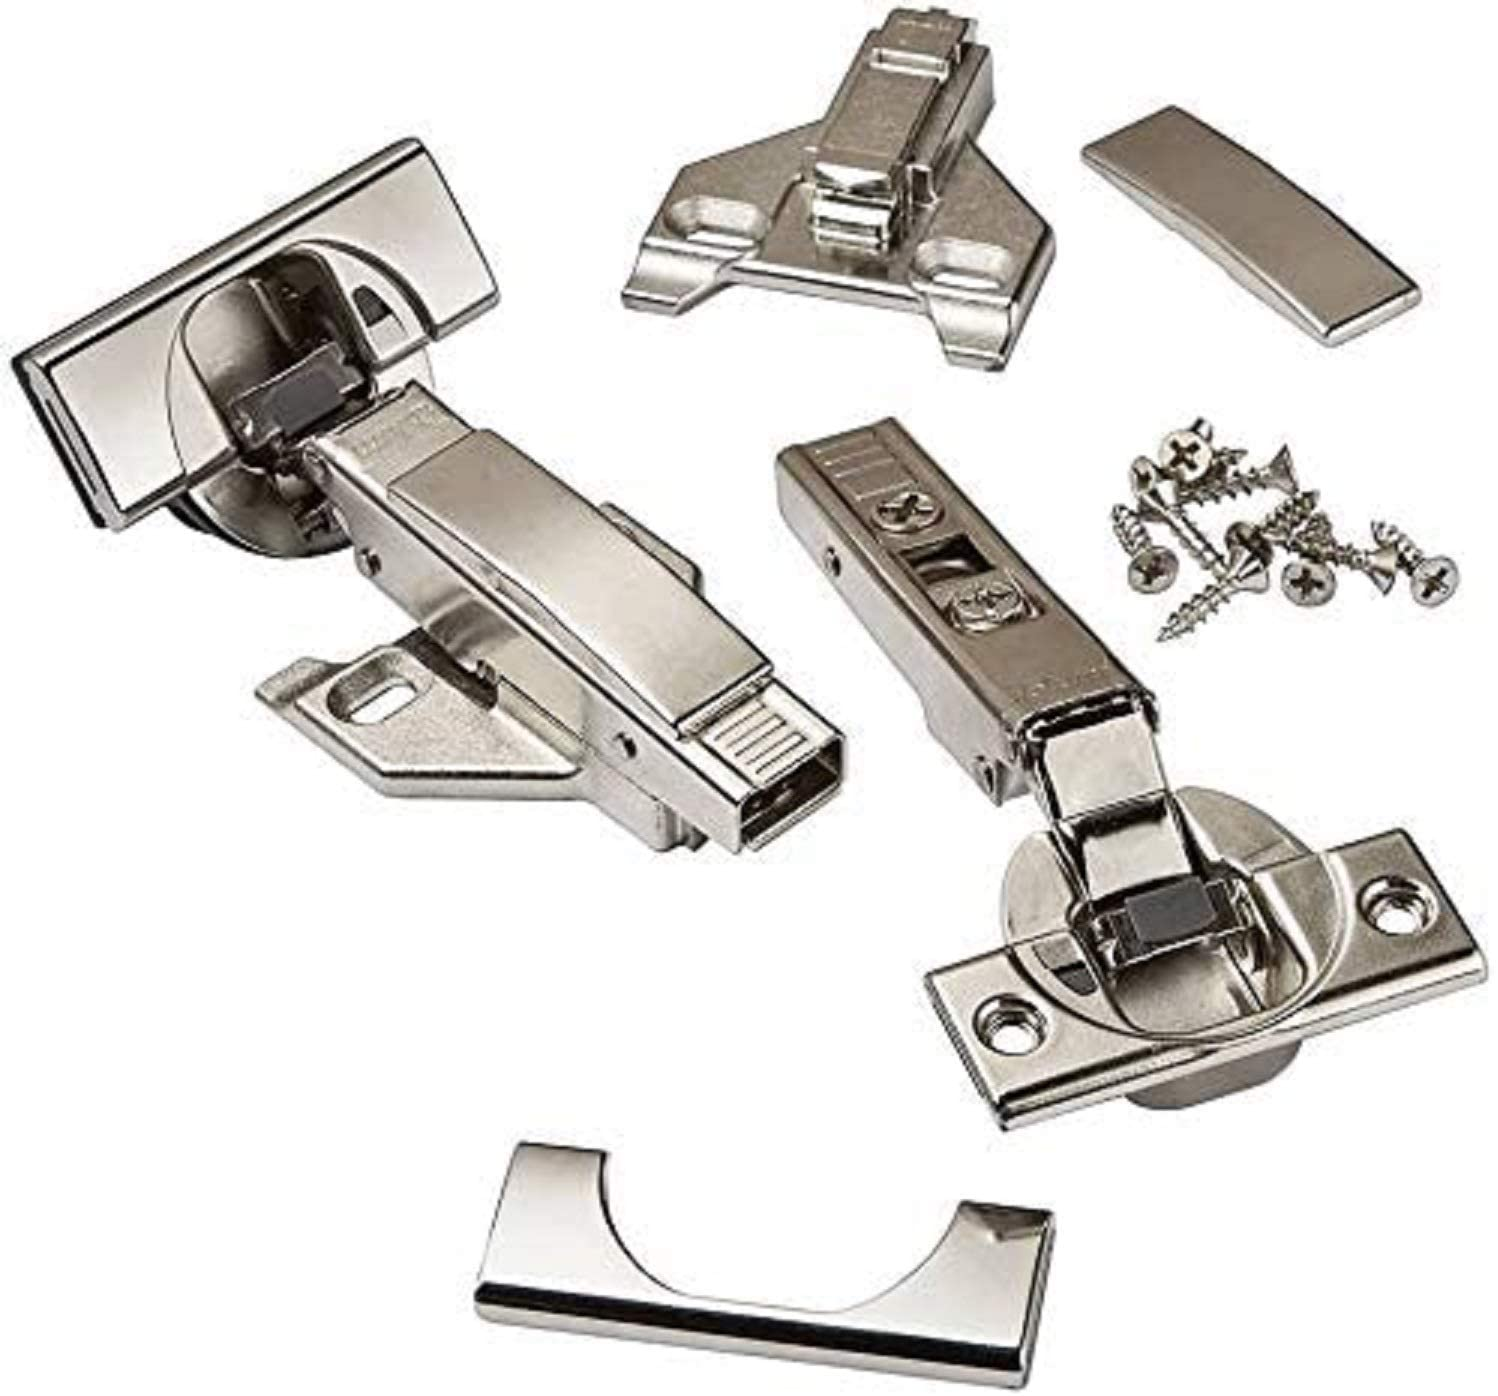 "Blum CLIP top BLUMOTION Soft Close Hinges, 110 degree, Self Closing, FACEFRAME with Mounting Plates, and hinge cover plates (1/2 to 3/4"" Overlay - Premium - 8 Pack)"